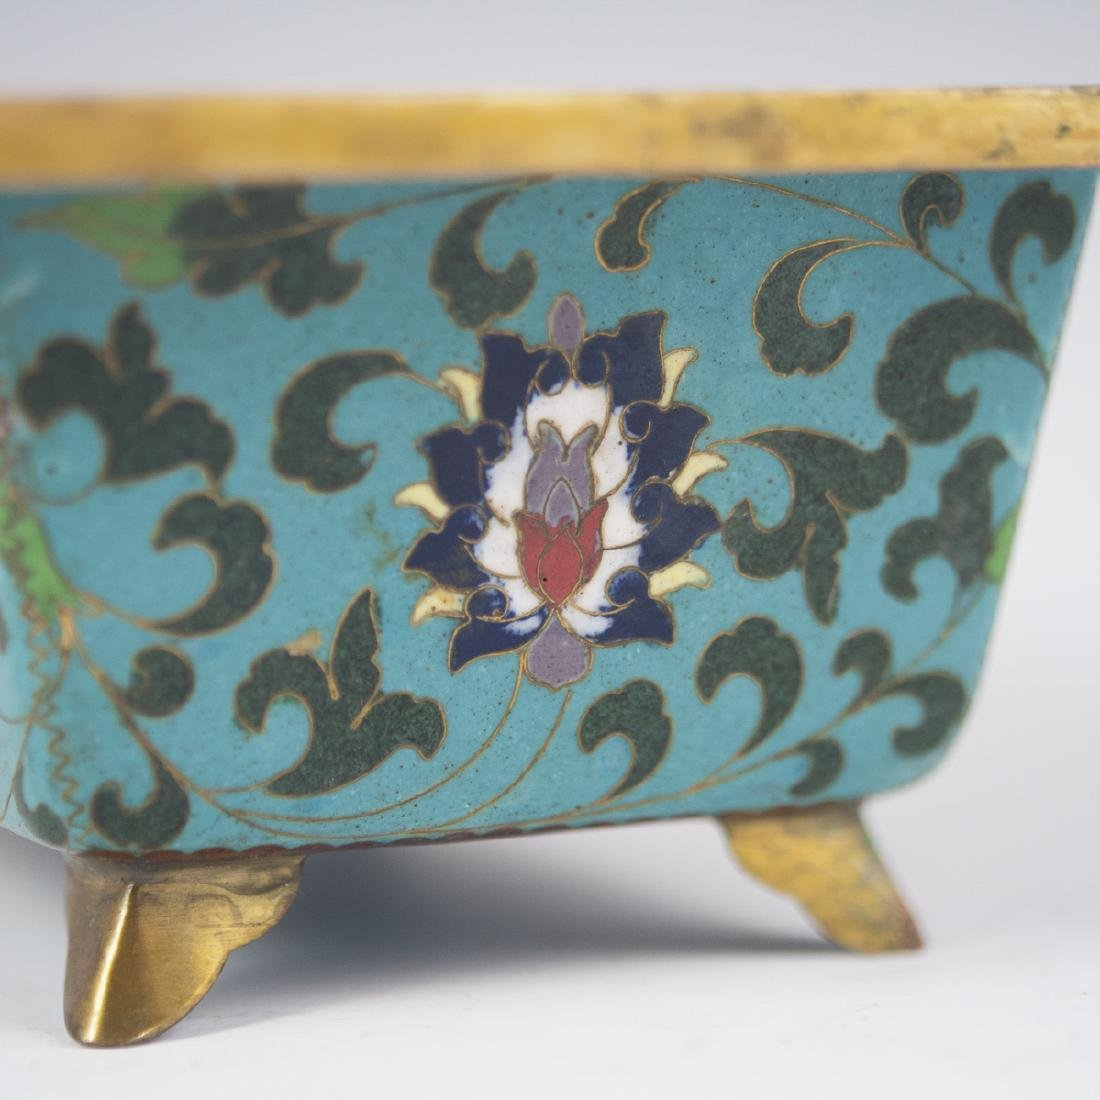 Chinese Cloisonne Enameled Footed Planter - 3